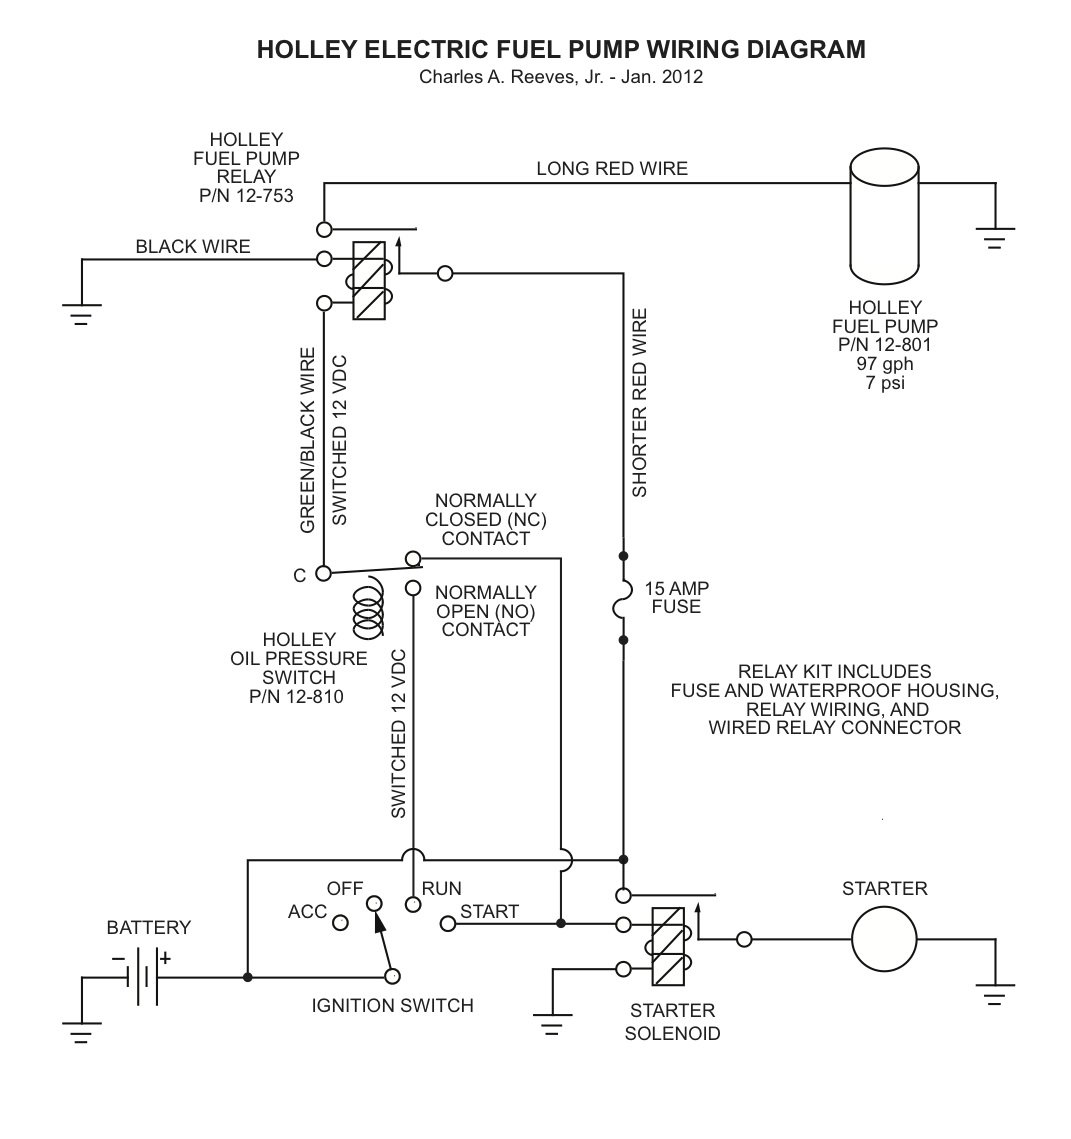 146291d1325616423 installing holley electric fuel pump 1966 mustang elect fuel pump wiring diagram installing a holley electric fuel pump in a 1966 mustang ford ox66 oil pump wiring diagram at creativeand.co